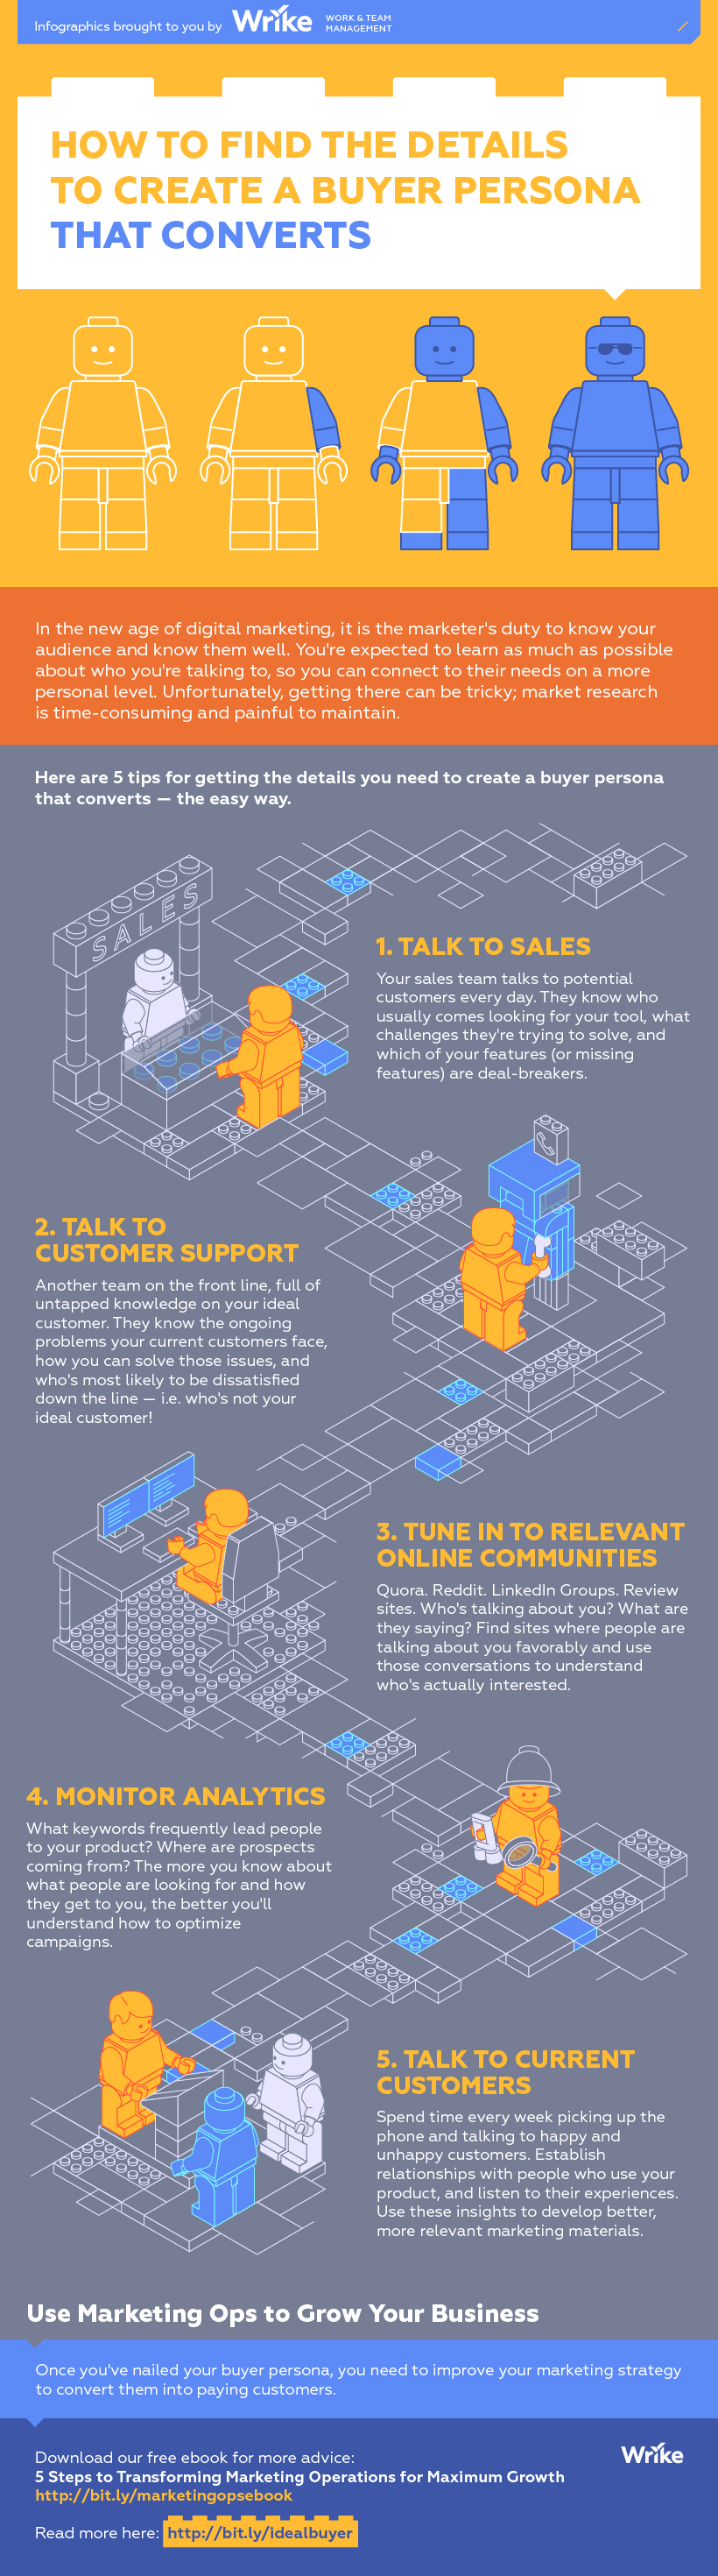 How to Build a Buyer Persona That Converts (#Infographic)